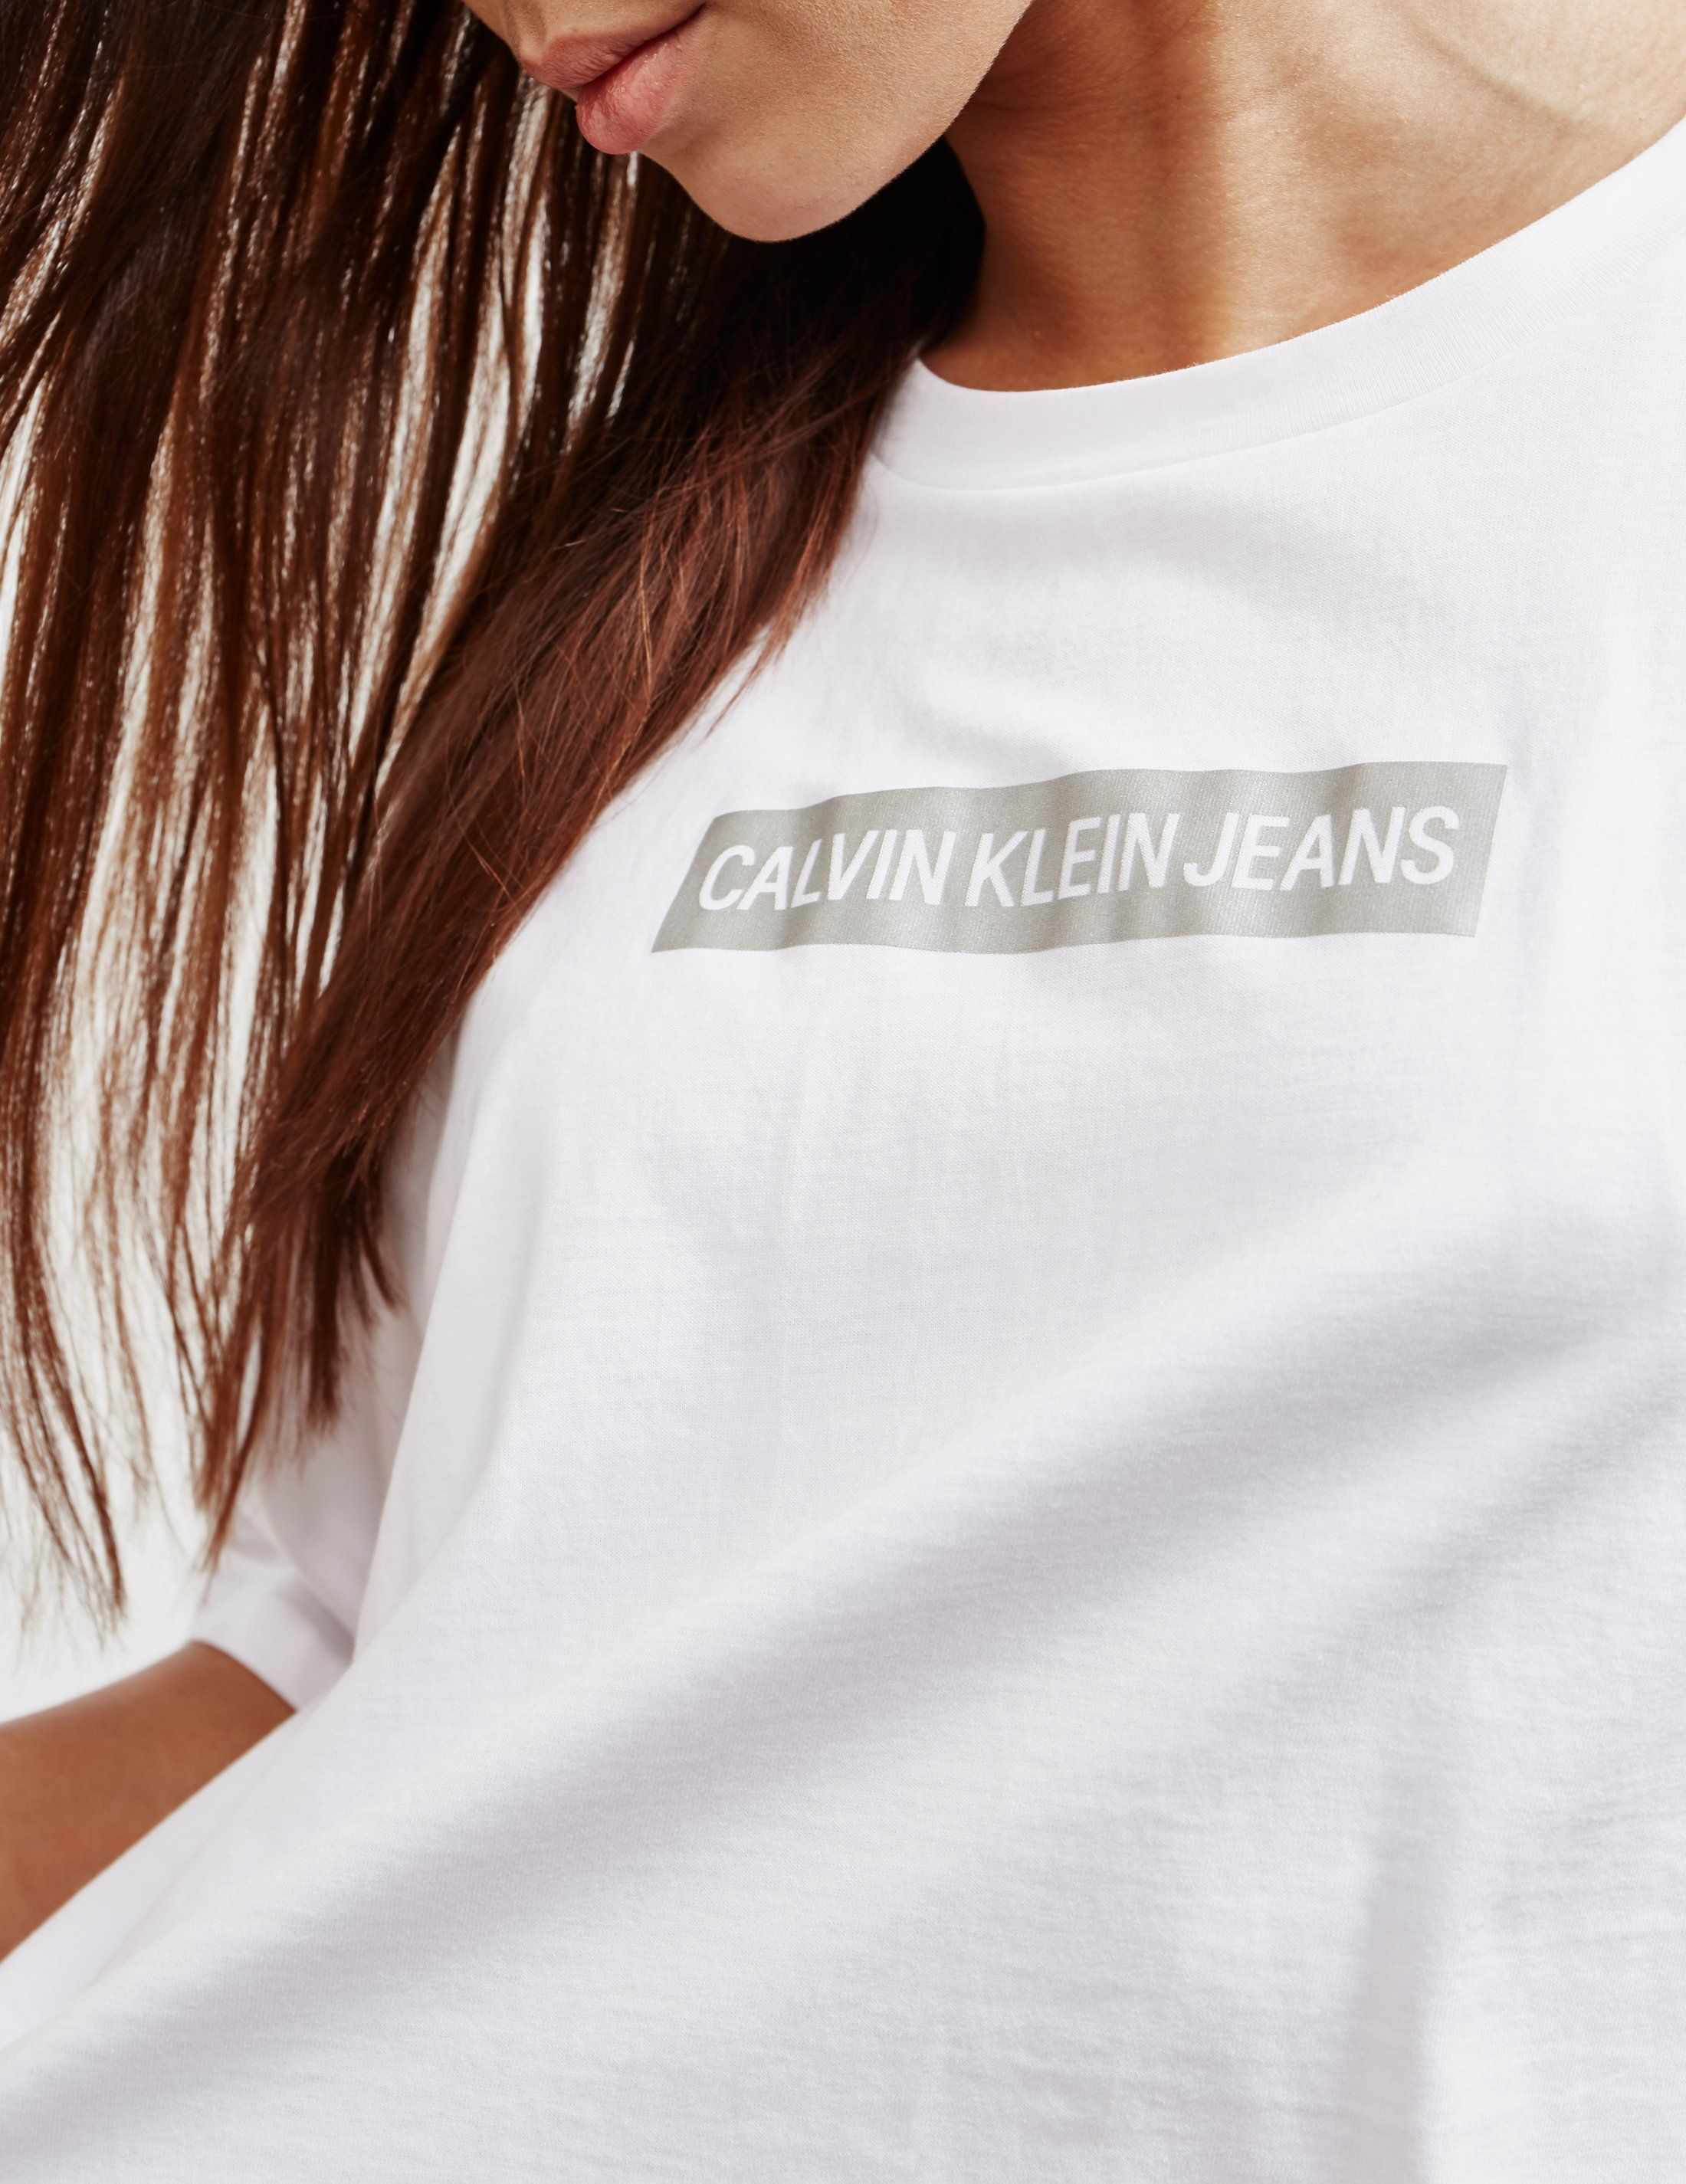 Calvin Klein Jeans Institutional Metallic Short Sleeve T-Shirt